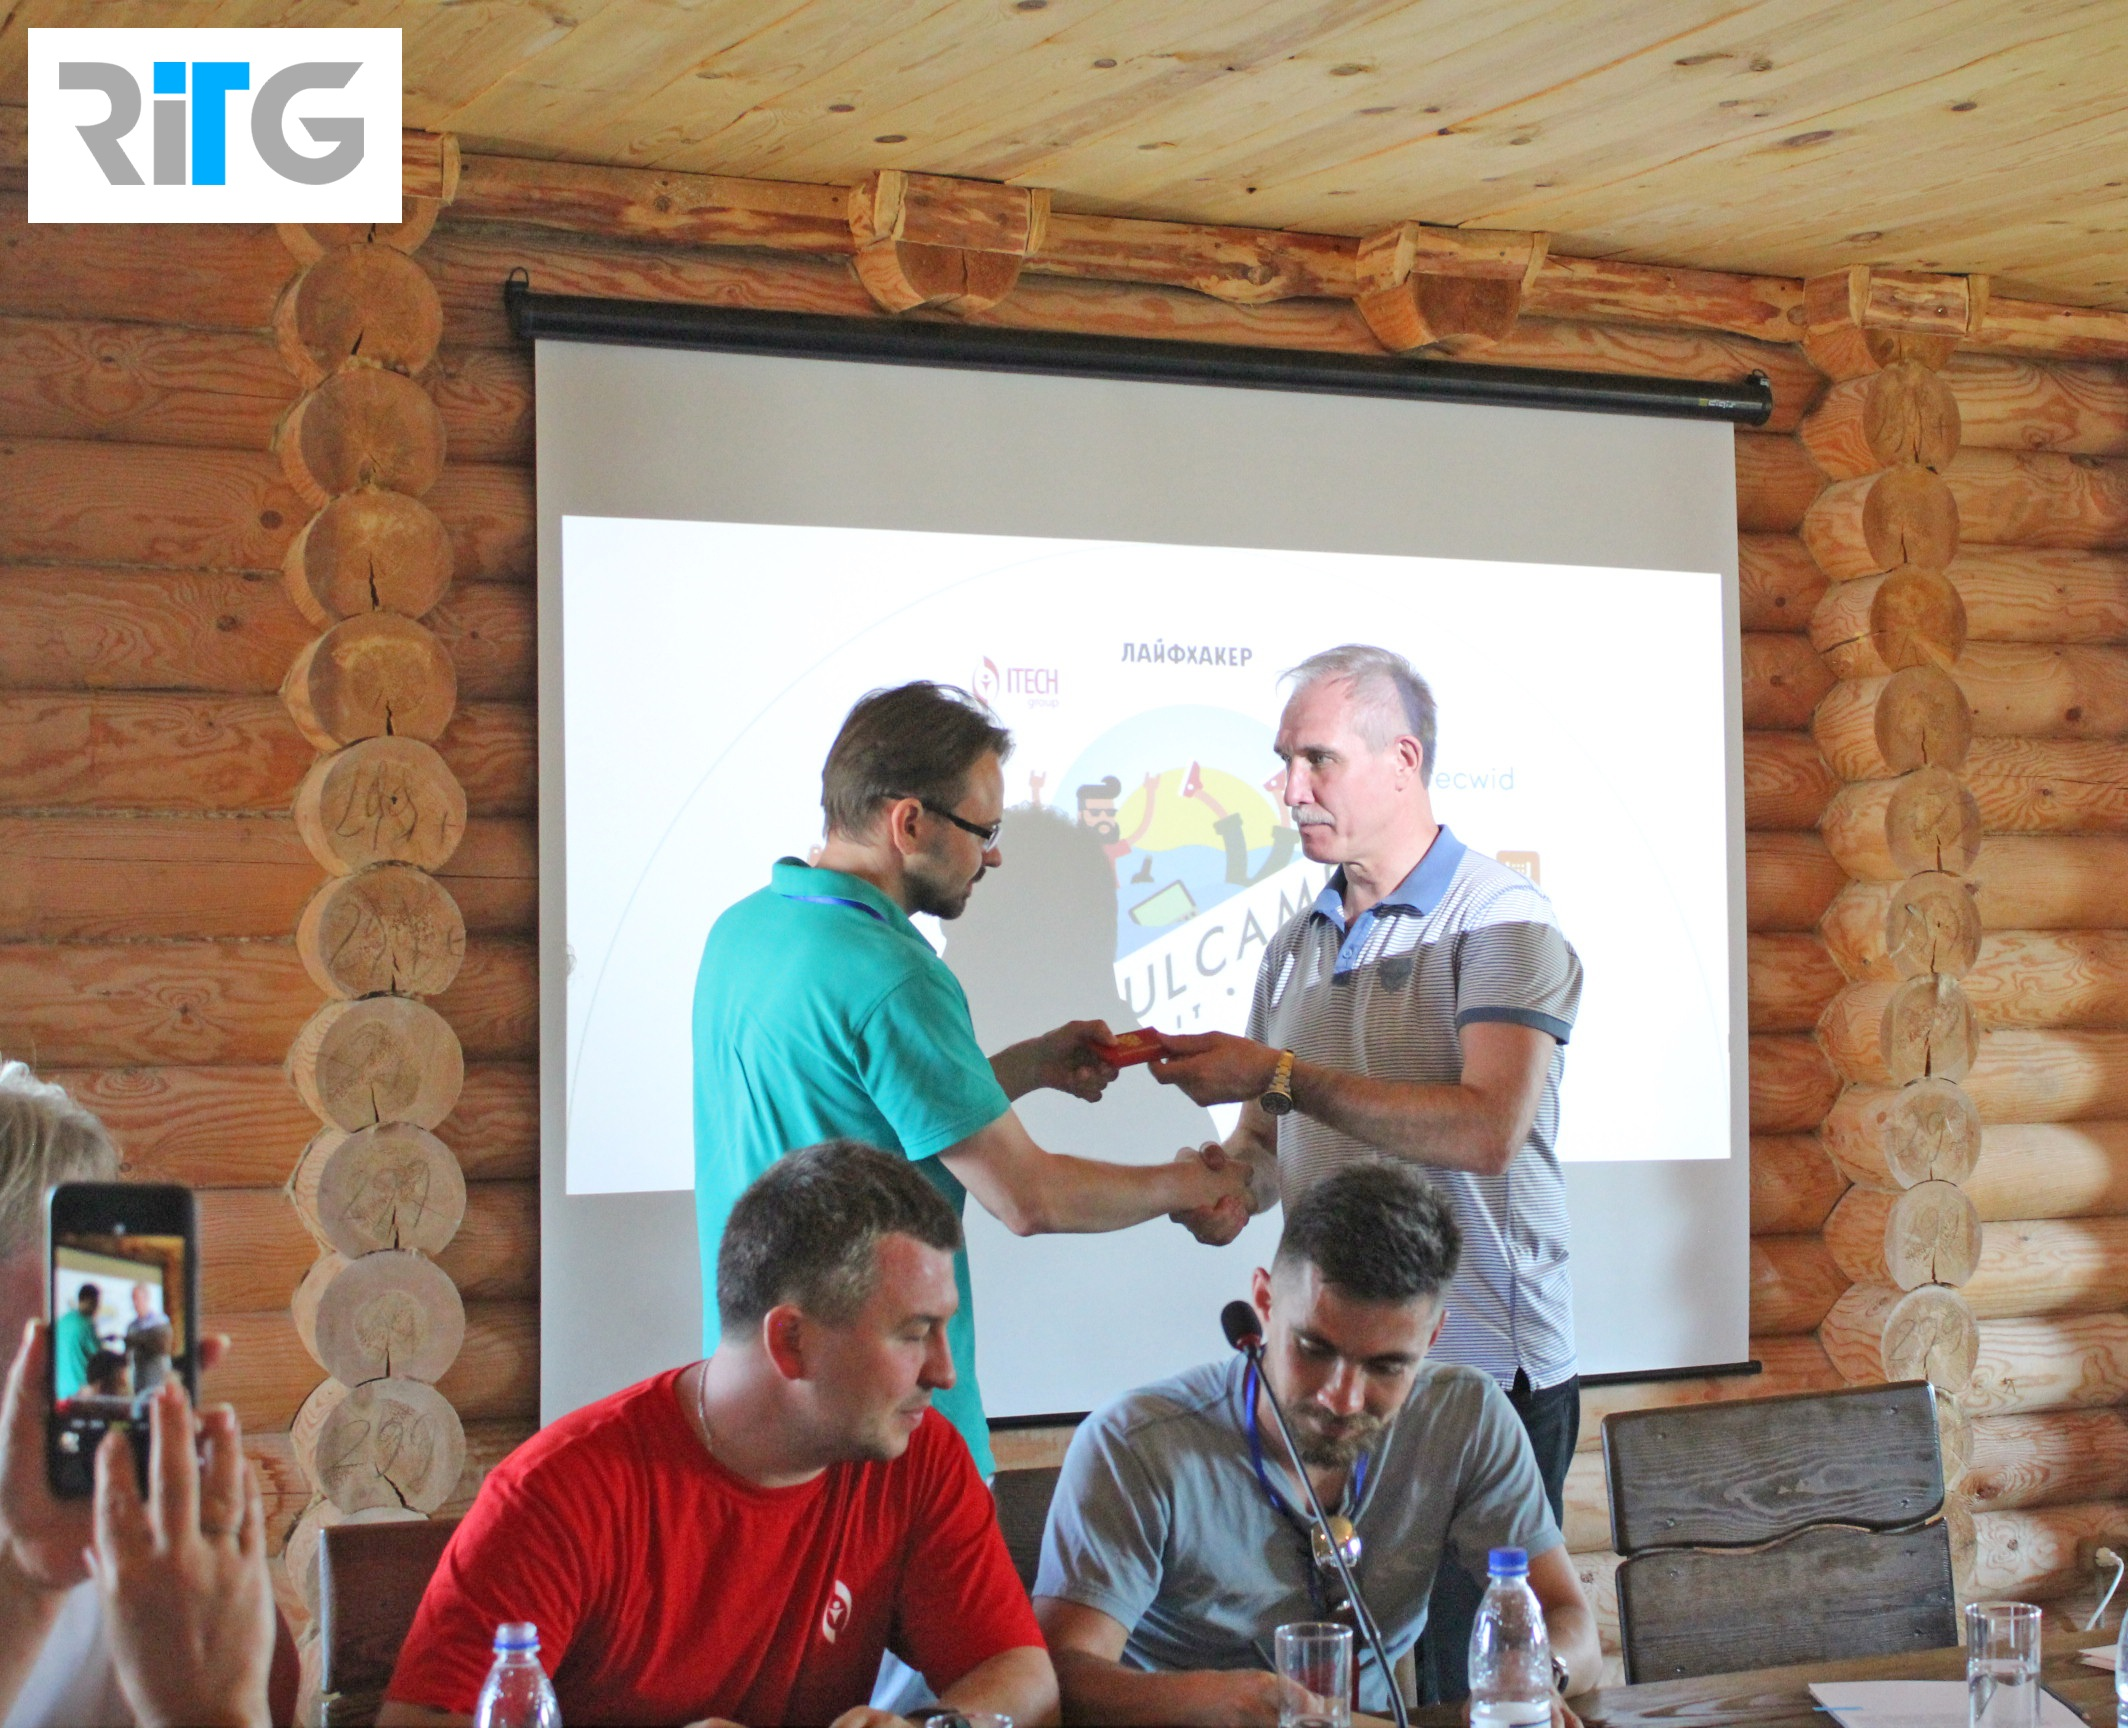 Chief Executive Officer of RITG became the IT Ombudsman of the region